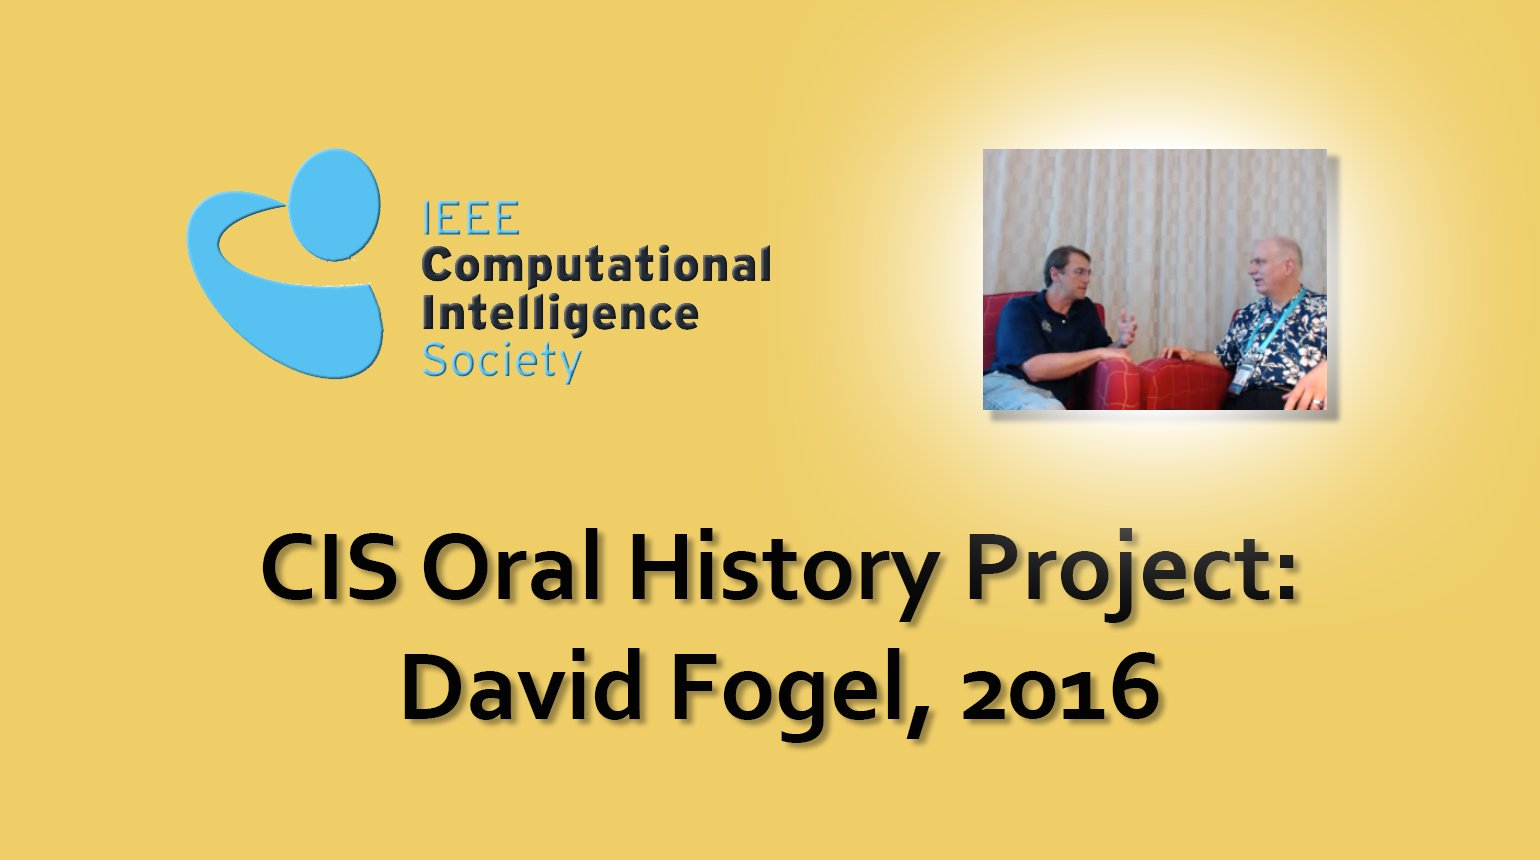 Interview with David Fogel, 2016: CIS Oral History Project